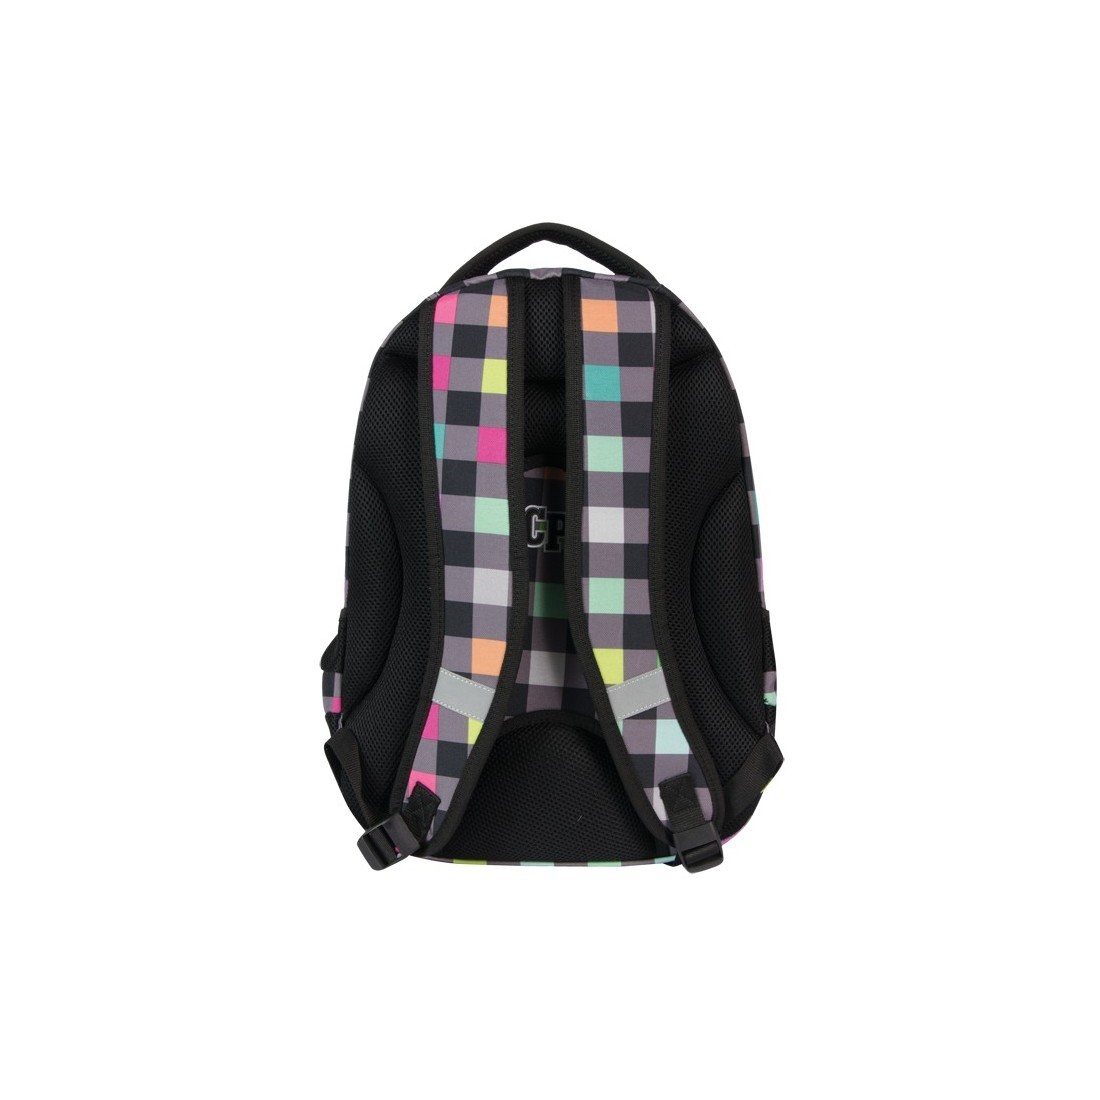 PLECAK MŁODZIEŻOWY COOLPACK COLLEGE PASTEL CHECK CP 121 - plecak-tornister.pl